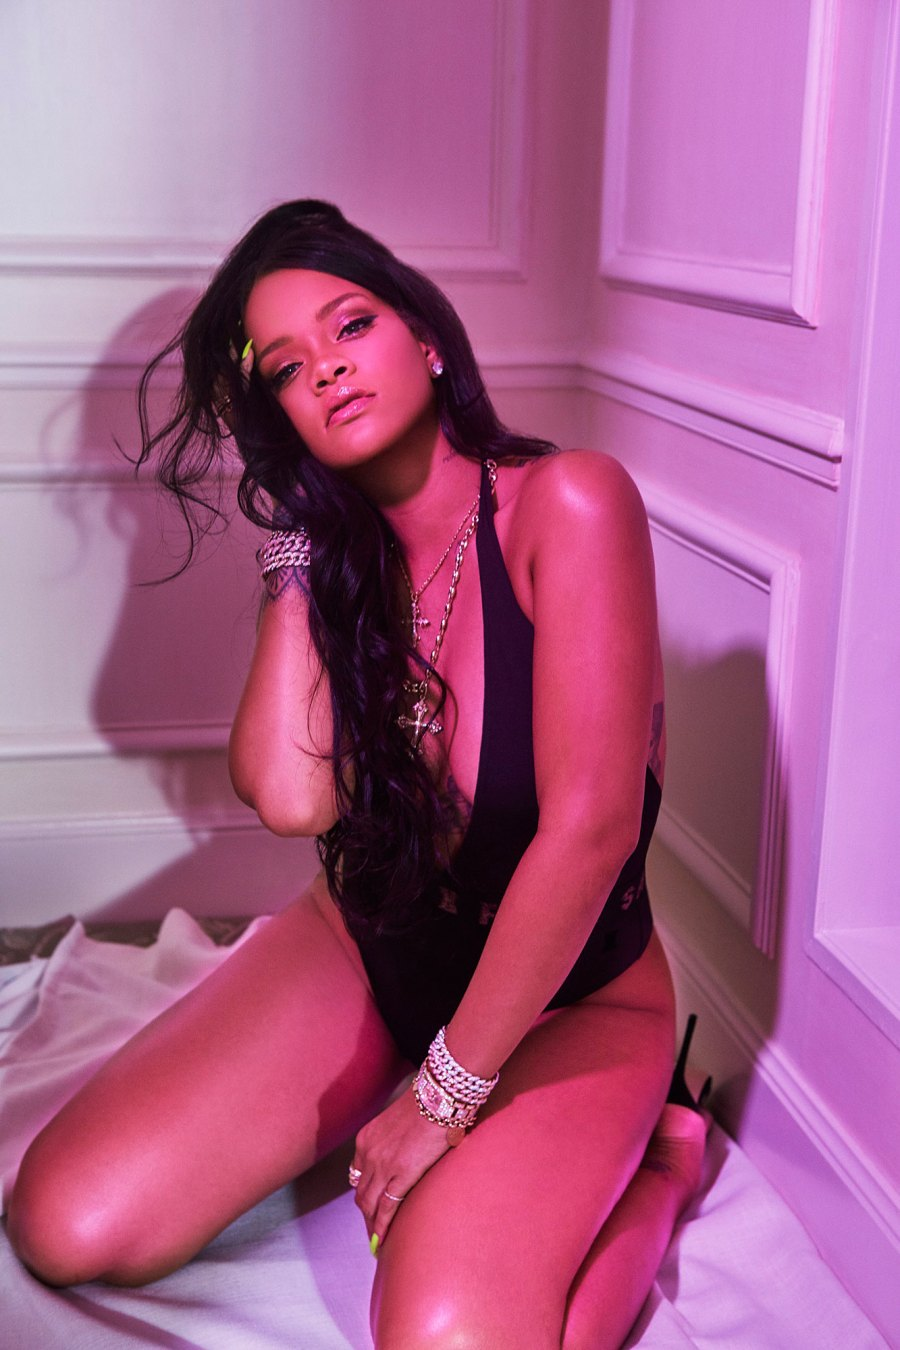 7 of Our Favorite Pieces from the Latest Savage x Fenty Collection from Rihanna